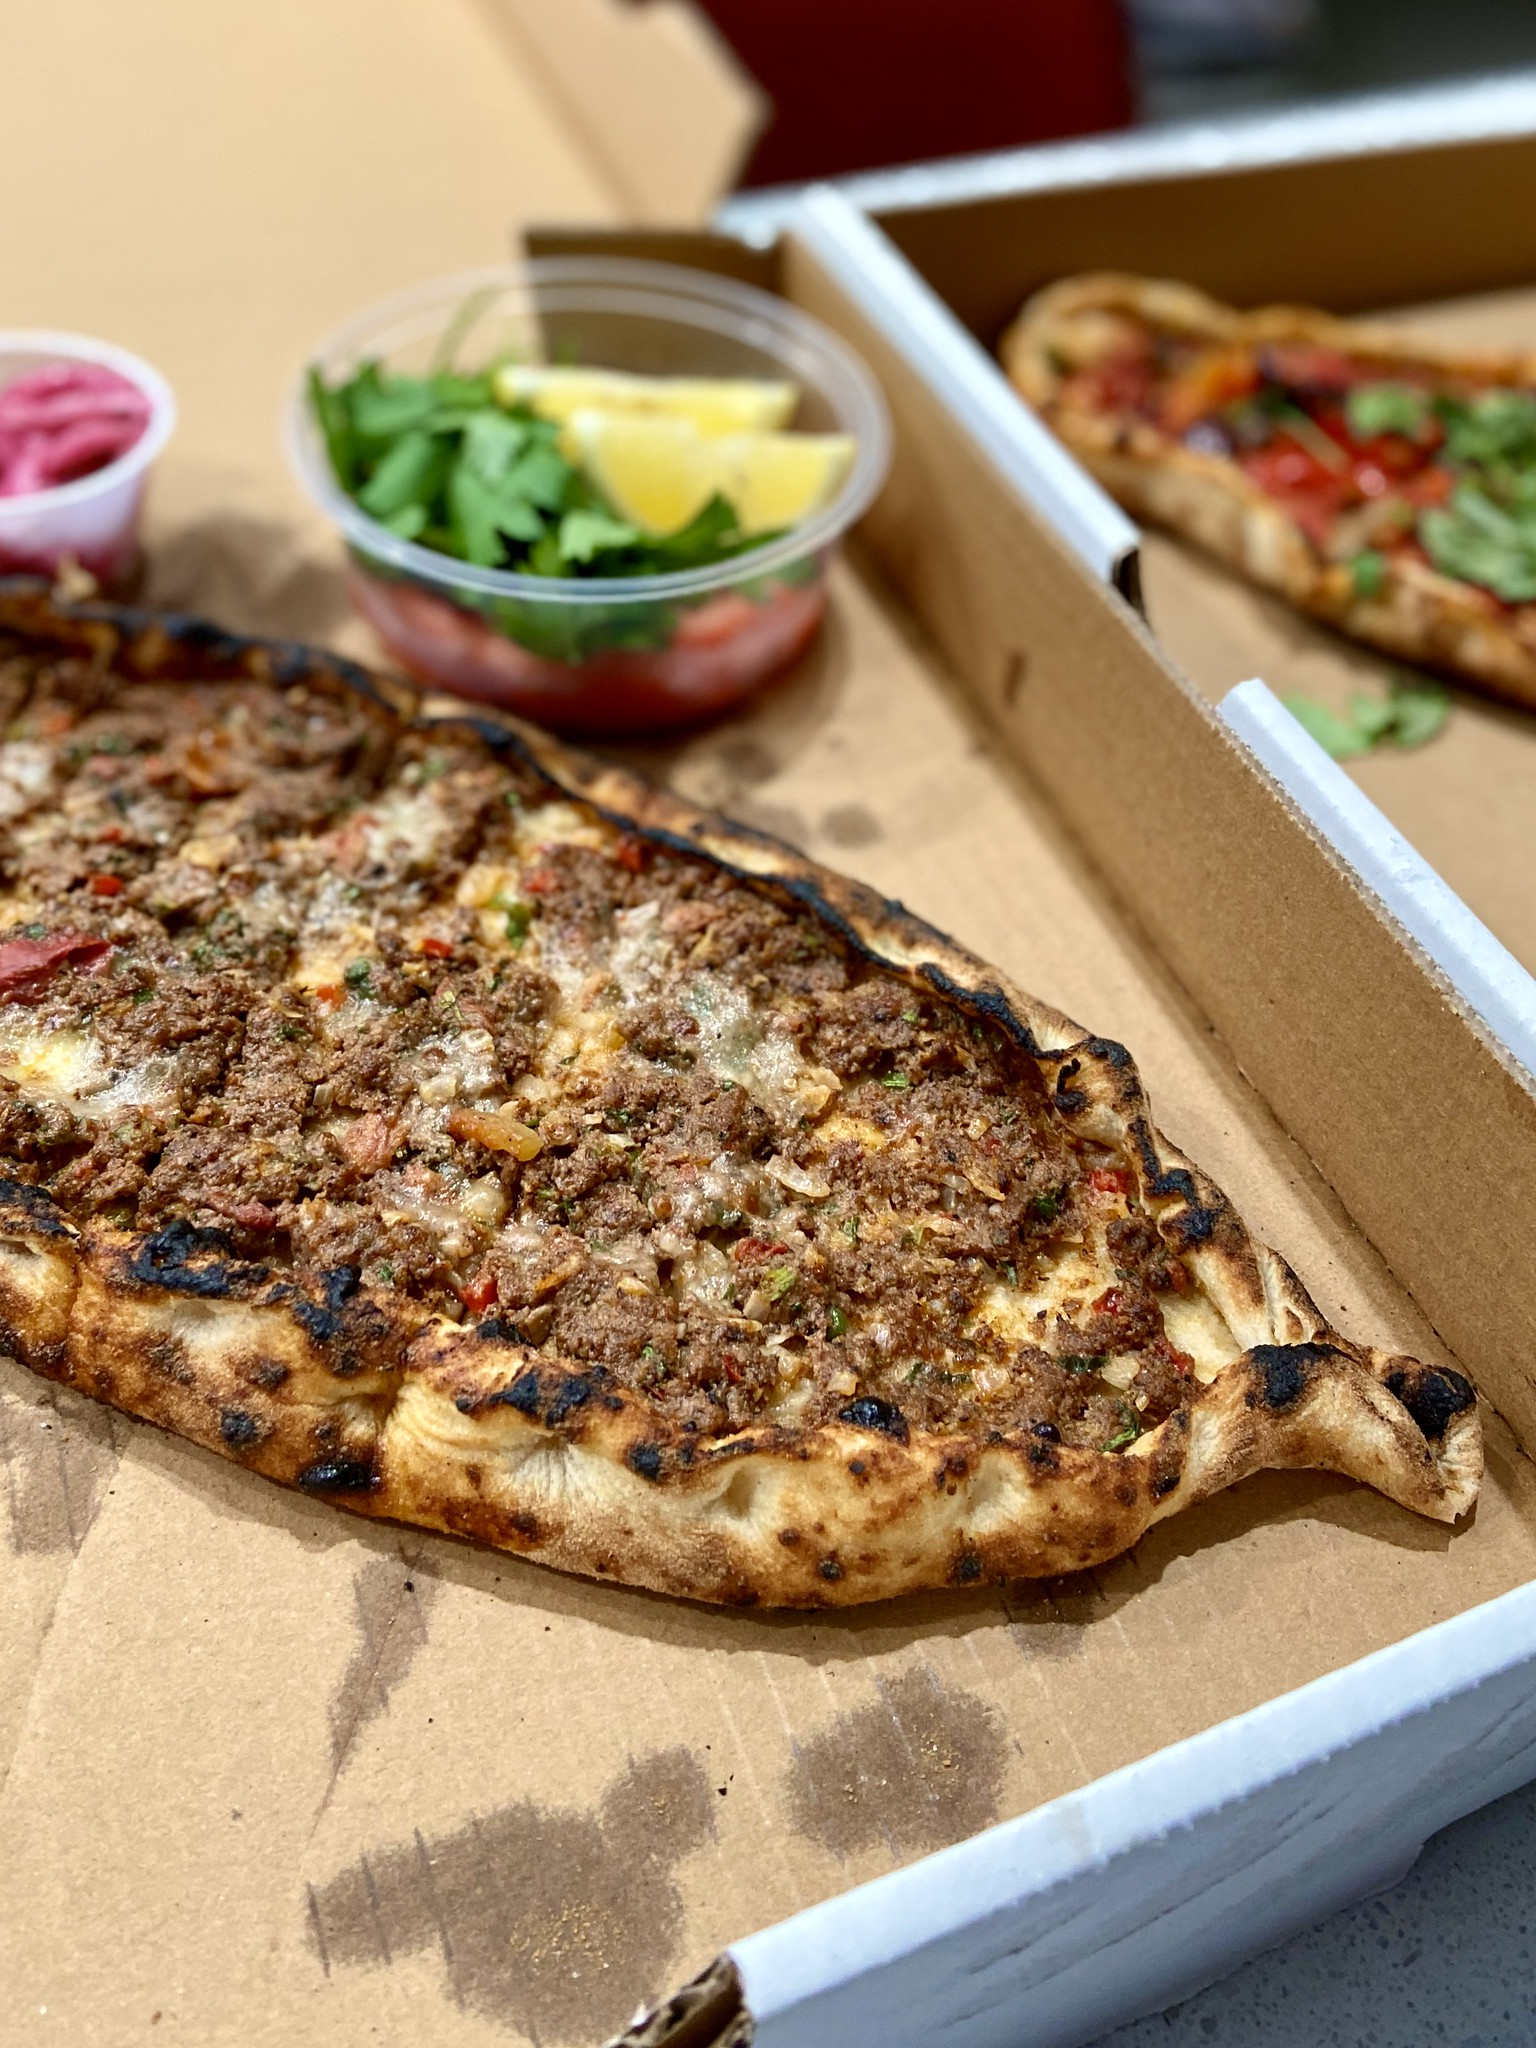 Lahmacun Pide - The Pide Place